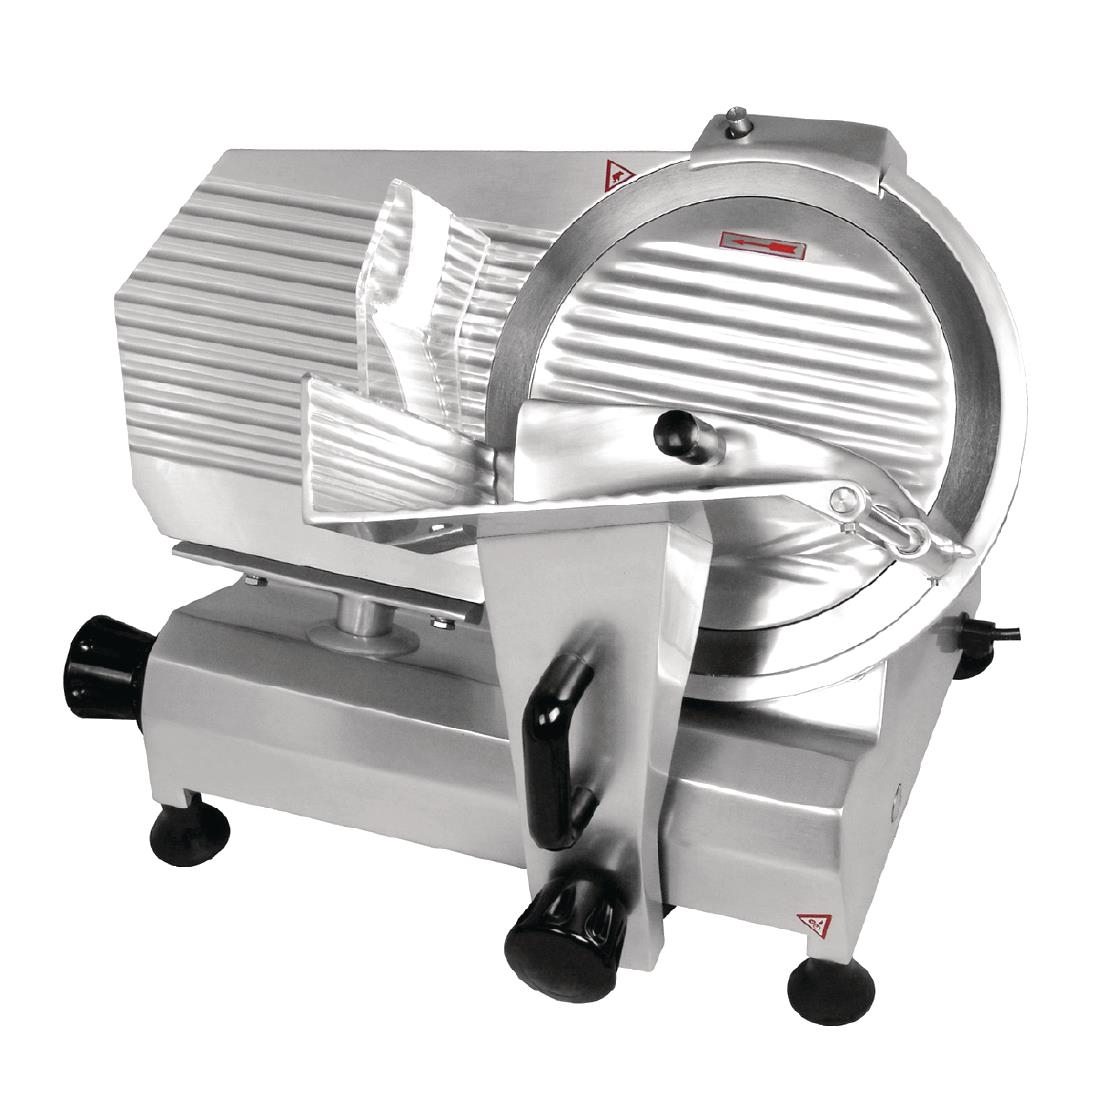 Birko Meat Slicer 250mm - DL769 - Buy Online at Nisbets